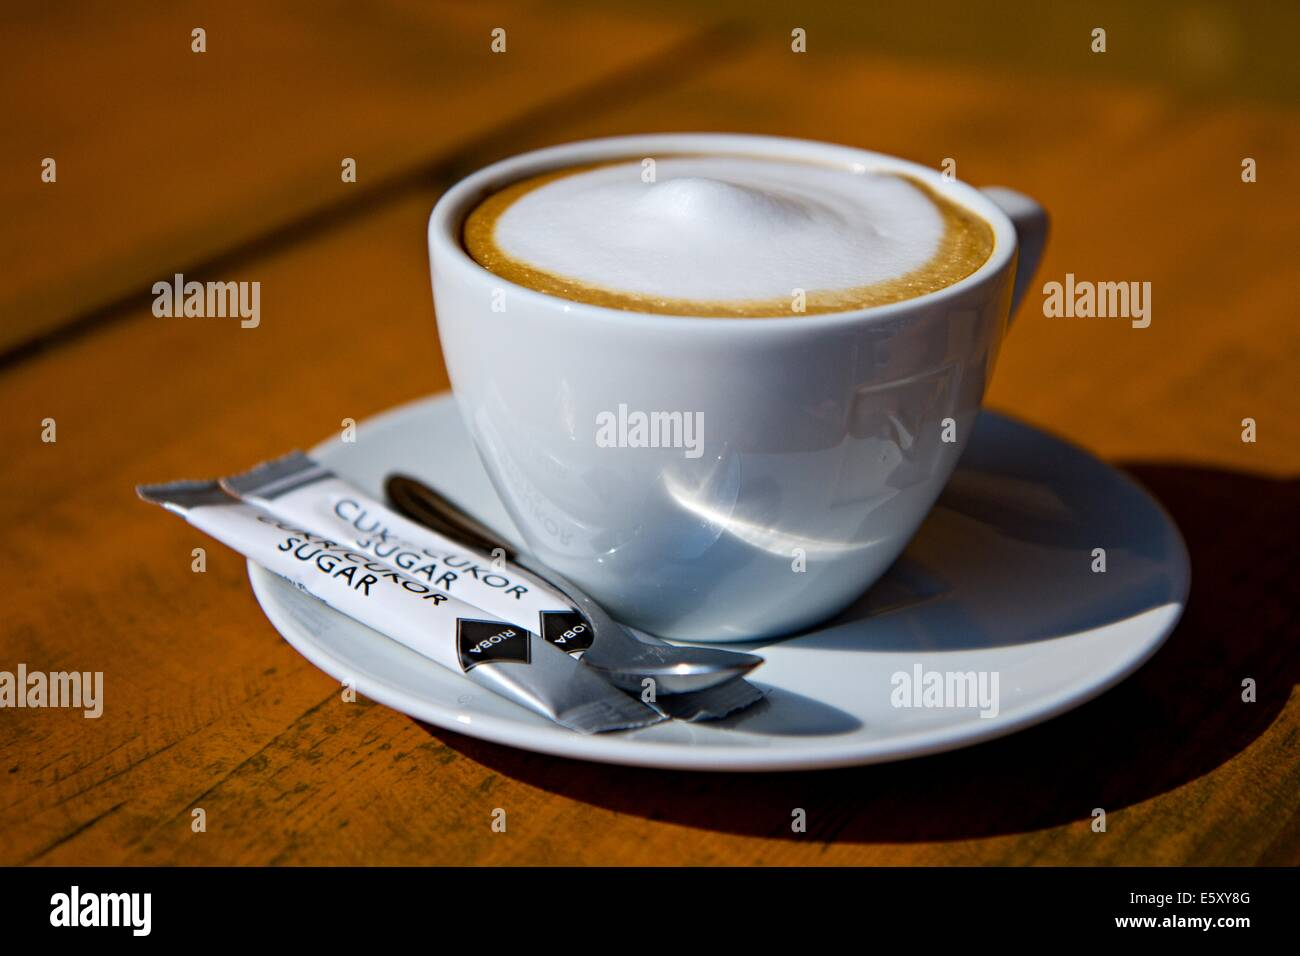 cup of cappuccino on a wooden table - Stock Image